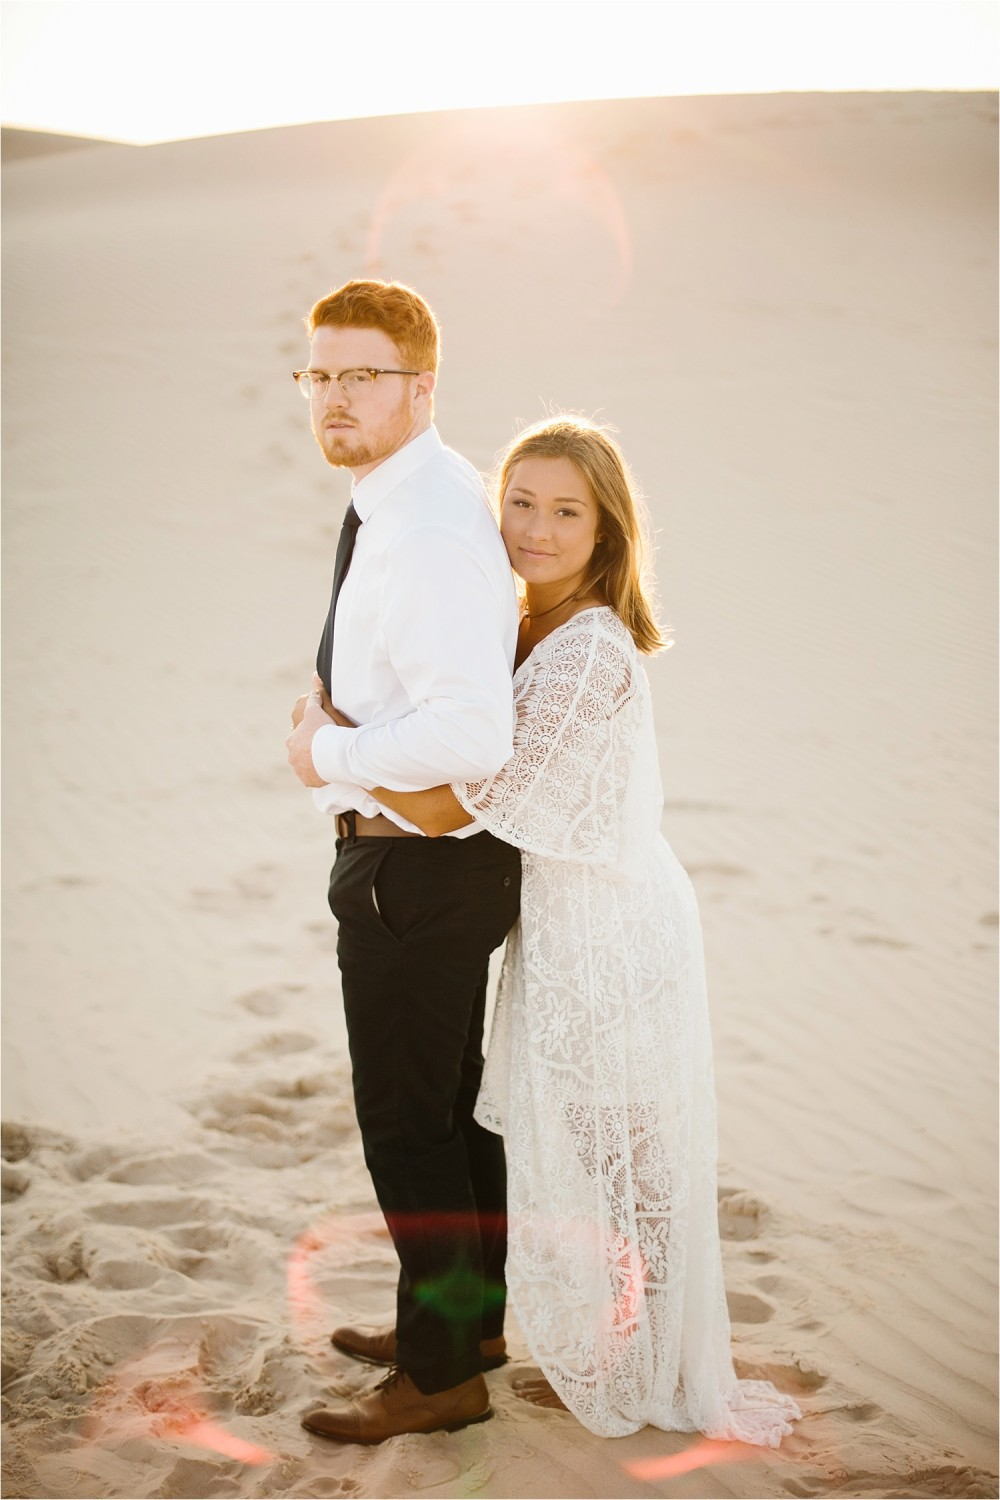 Lauren + Jacob __ a monahans sand dunes engagement session at sunrise by North Texas Wedding Photographer, Rachel Meagan Photography __ 20